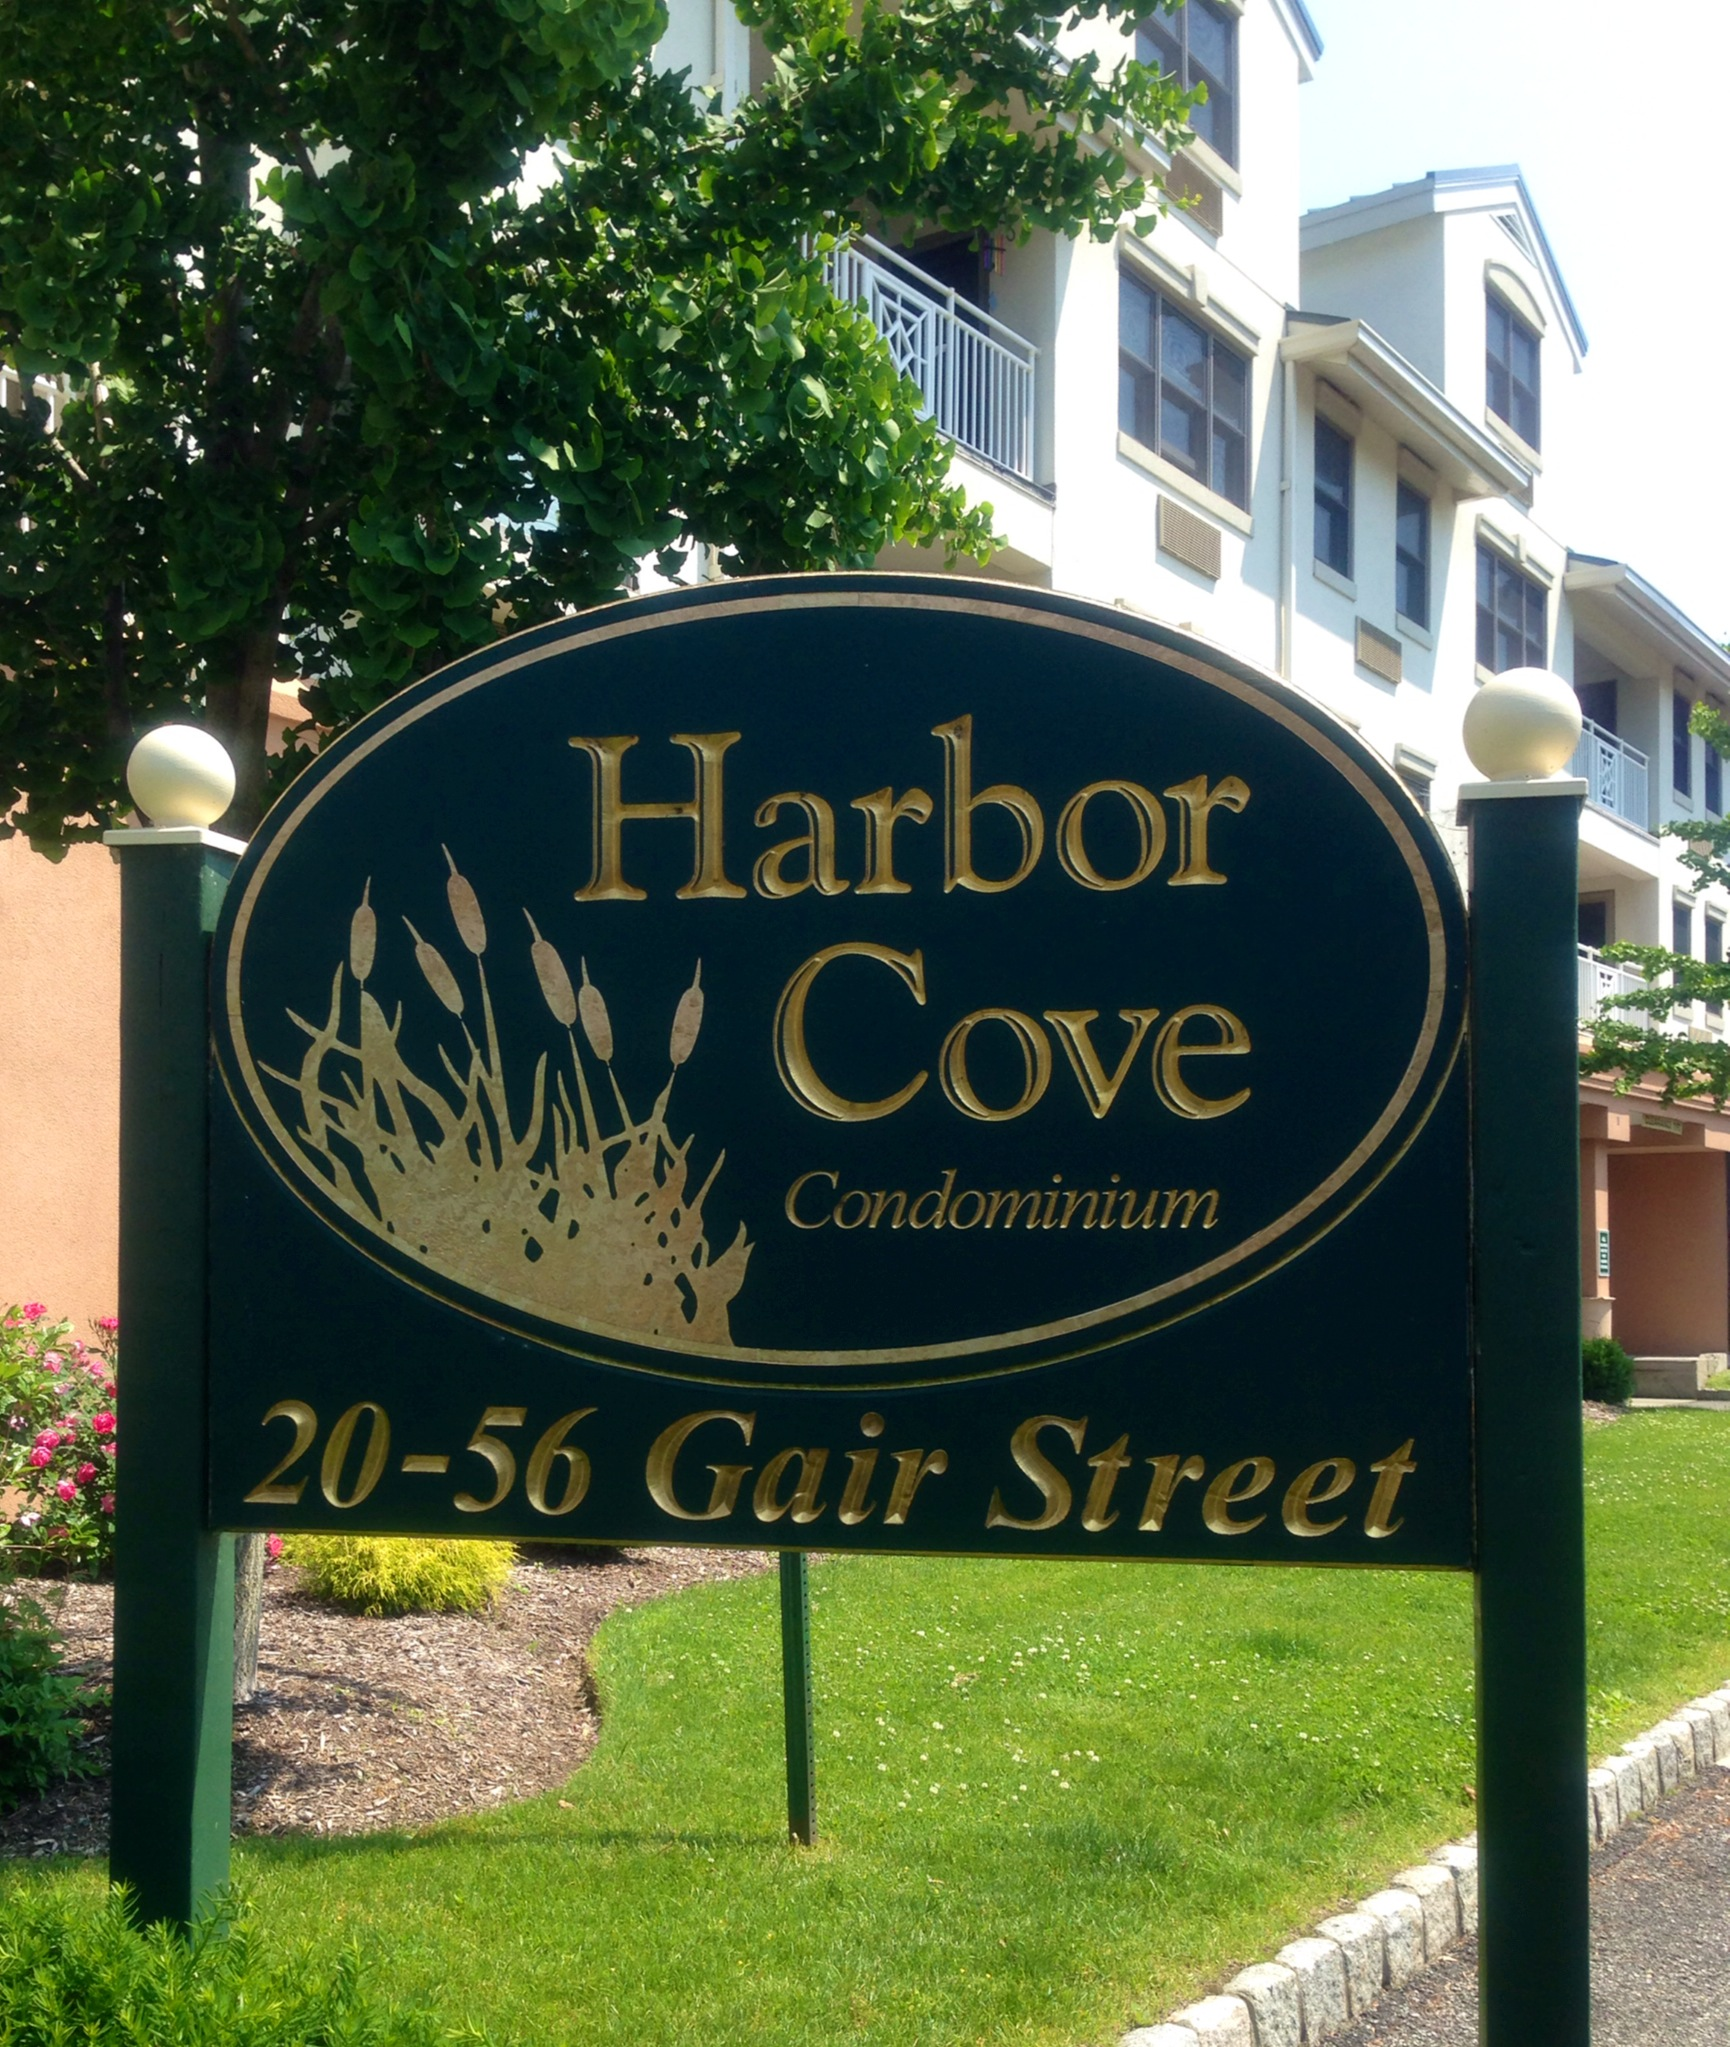 Property For Sale at Harbor Cove